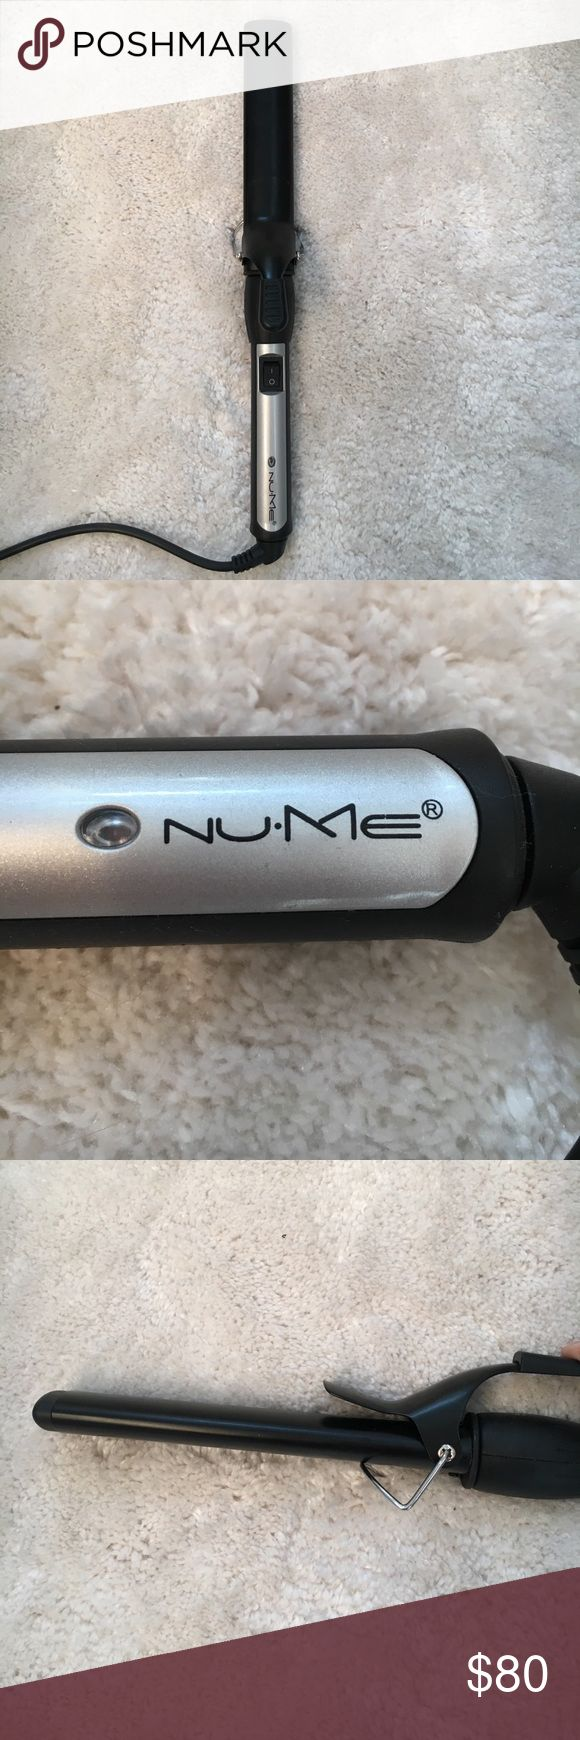 🎉24 hr sale! Nume Hair Curling Wand The wand is not circular, as you can see in the pictures. This shape gives a beach, effortless look, less of a defined curl. Like new!  Sale details: Final price reduction. Sale offer will end 9am central 1/21 NuMe Accessories